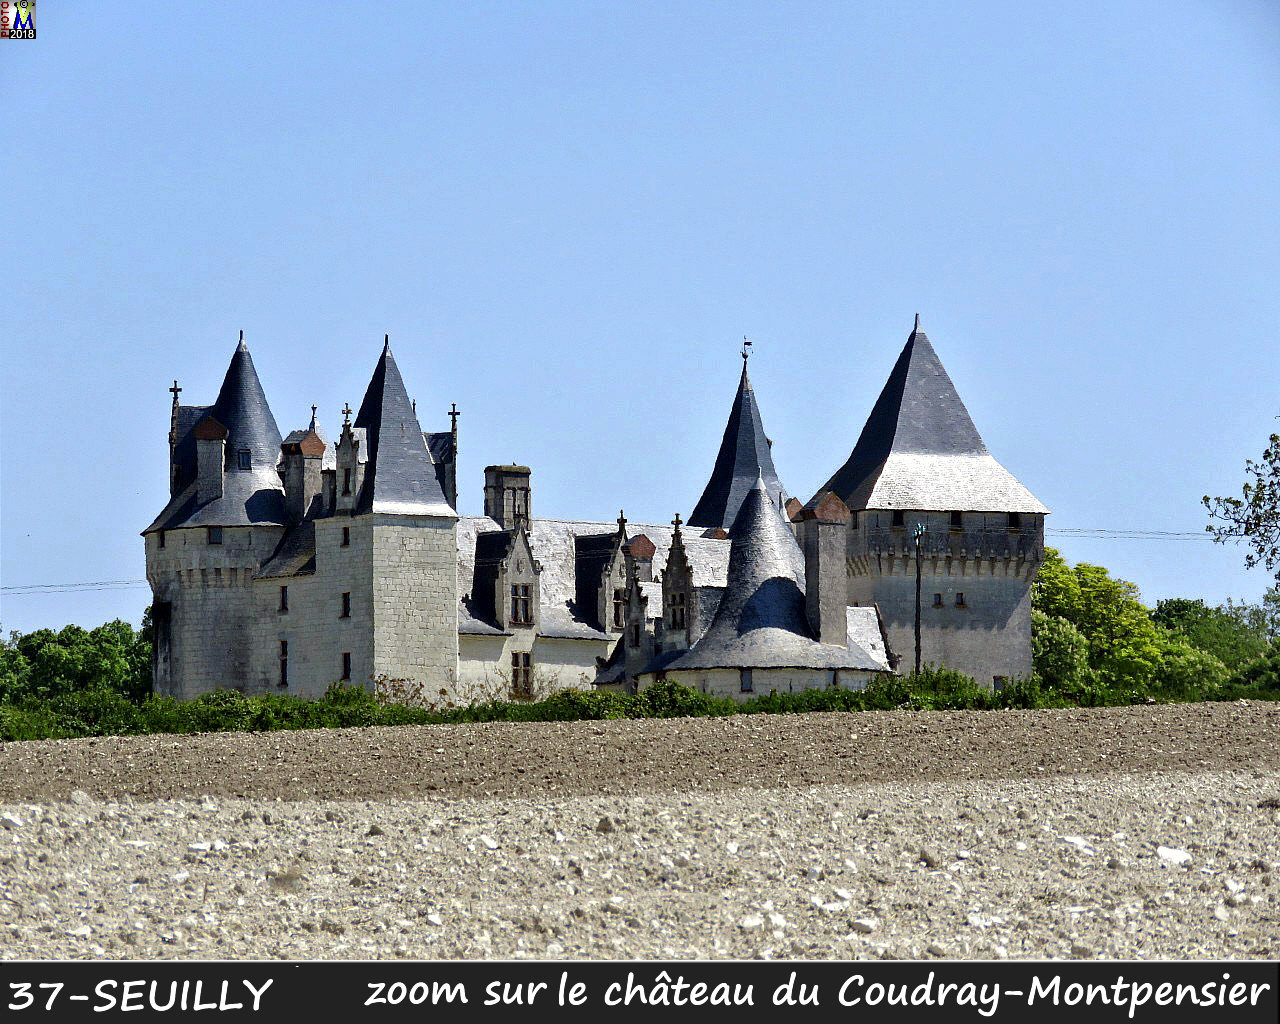 37SEUILLY_chateau_1010.jpg